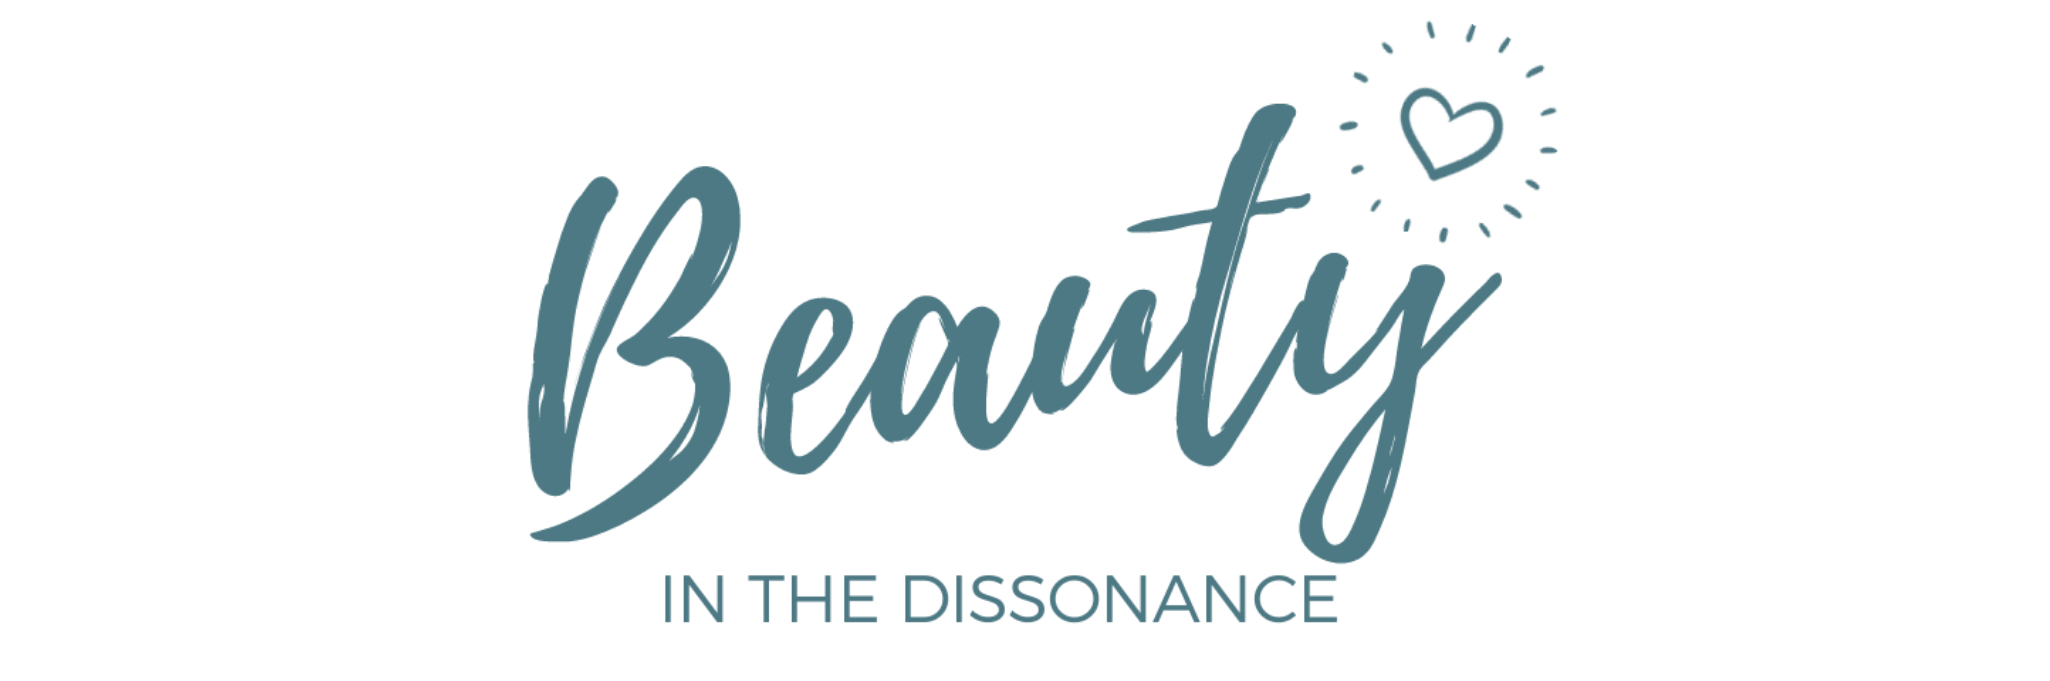 Beauty in the Dissonance